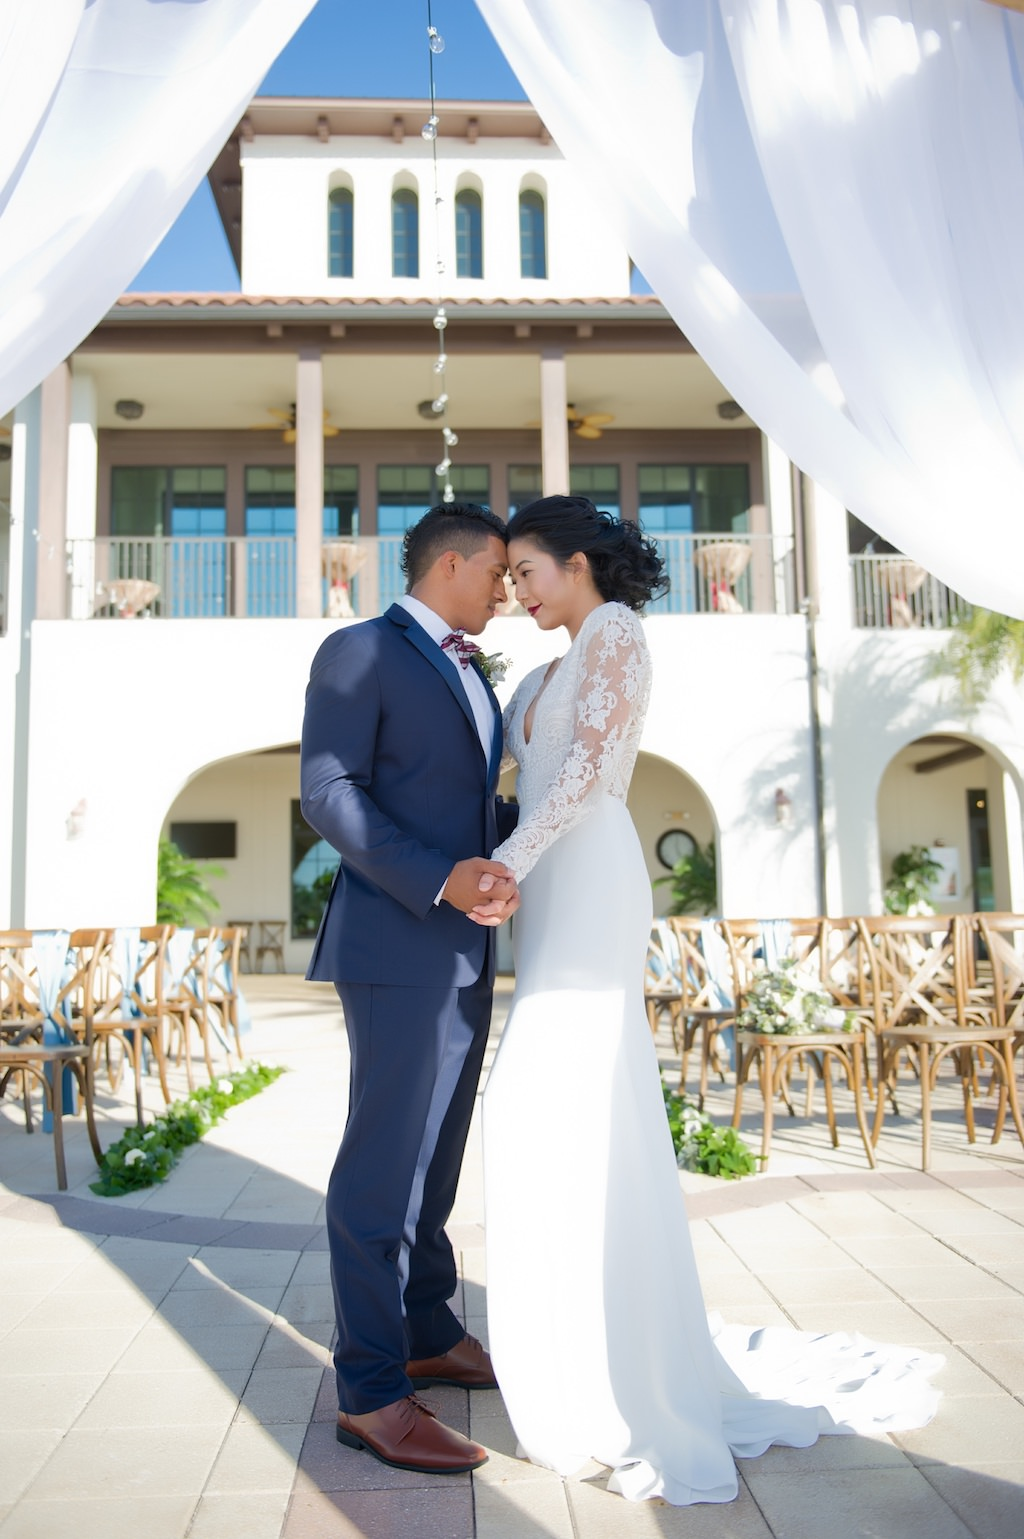 Outdoor Waterside Wedding Ceremony Portrait, Bride and Groom Under White Draped Ceremony Arch | Tampa Bay Waterfront Wedding Ceremony Venue Westshore Yacht Club | Tampa Bay Wedding Photographer Andi Diamond Photography